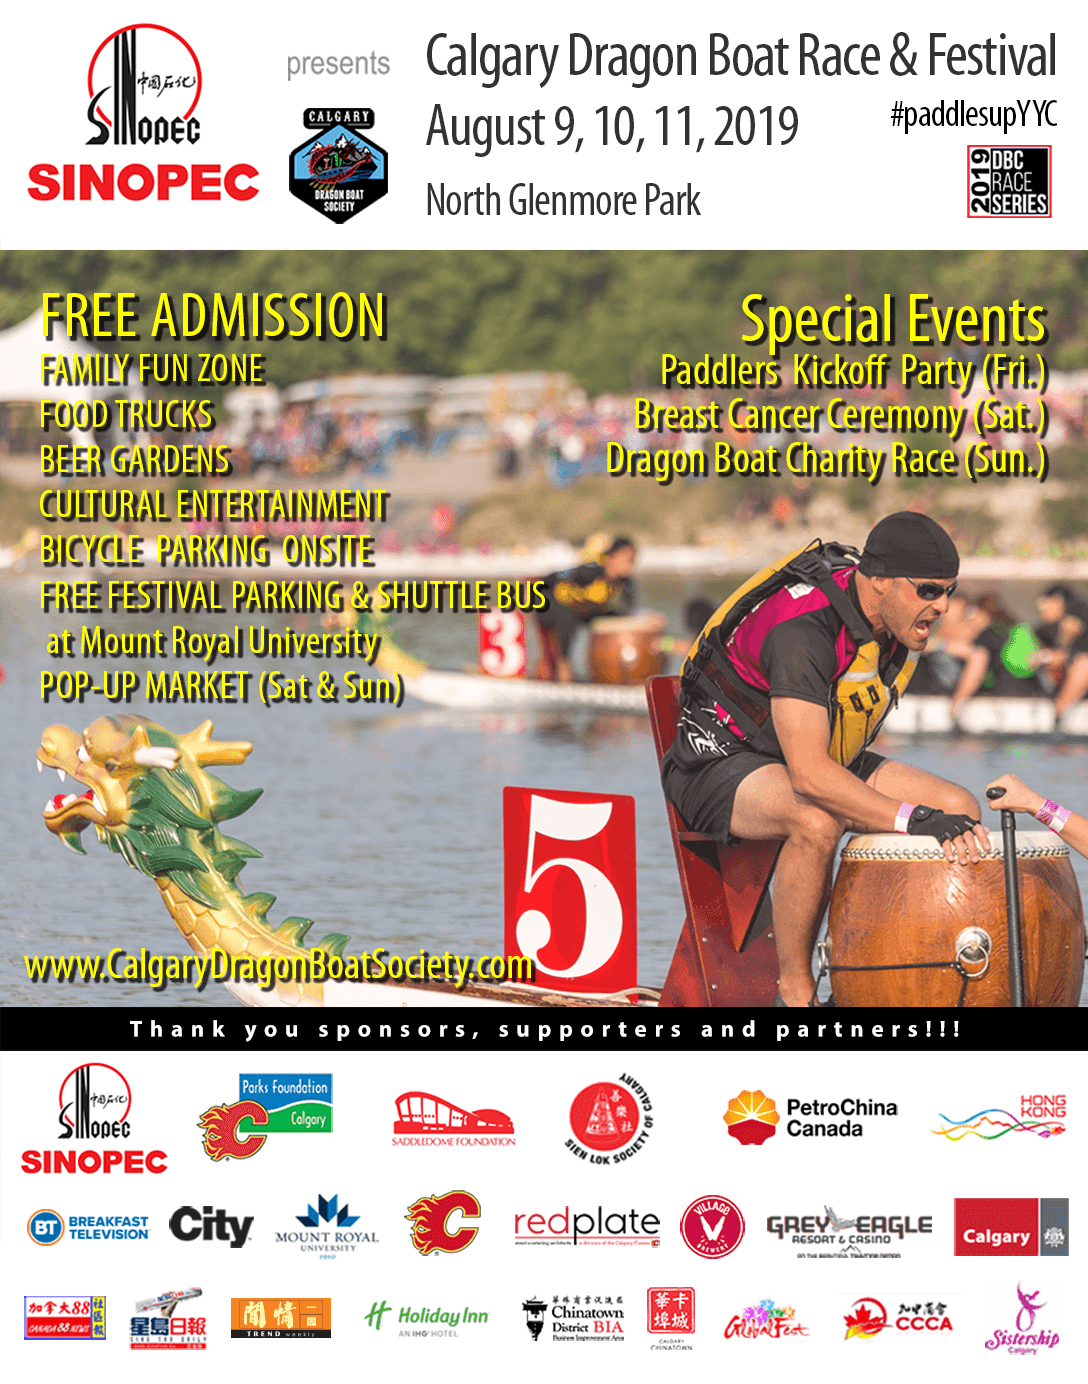 It's official, Calgary Dragon Boat Race & Festival 2019 will be held…